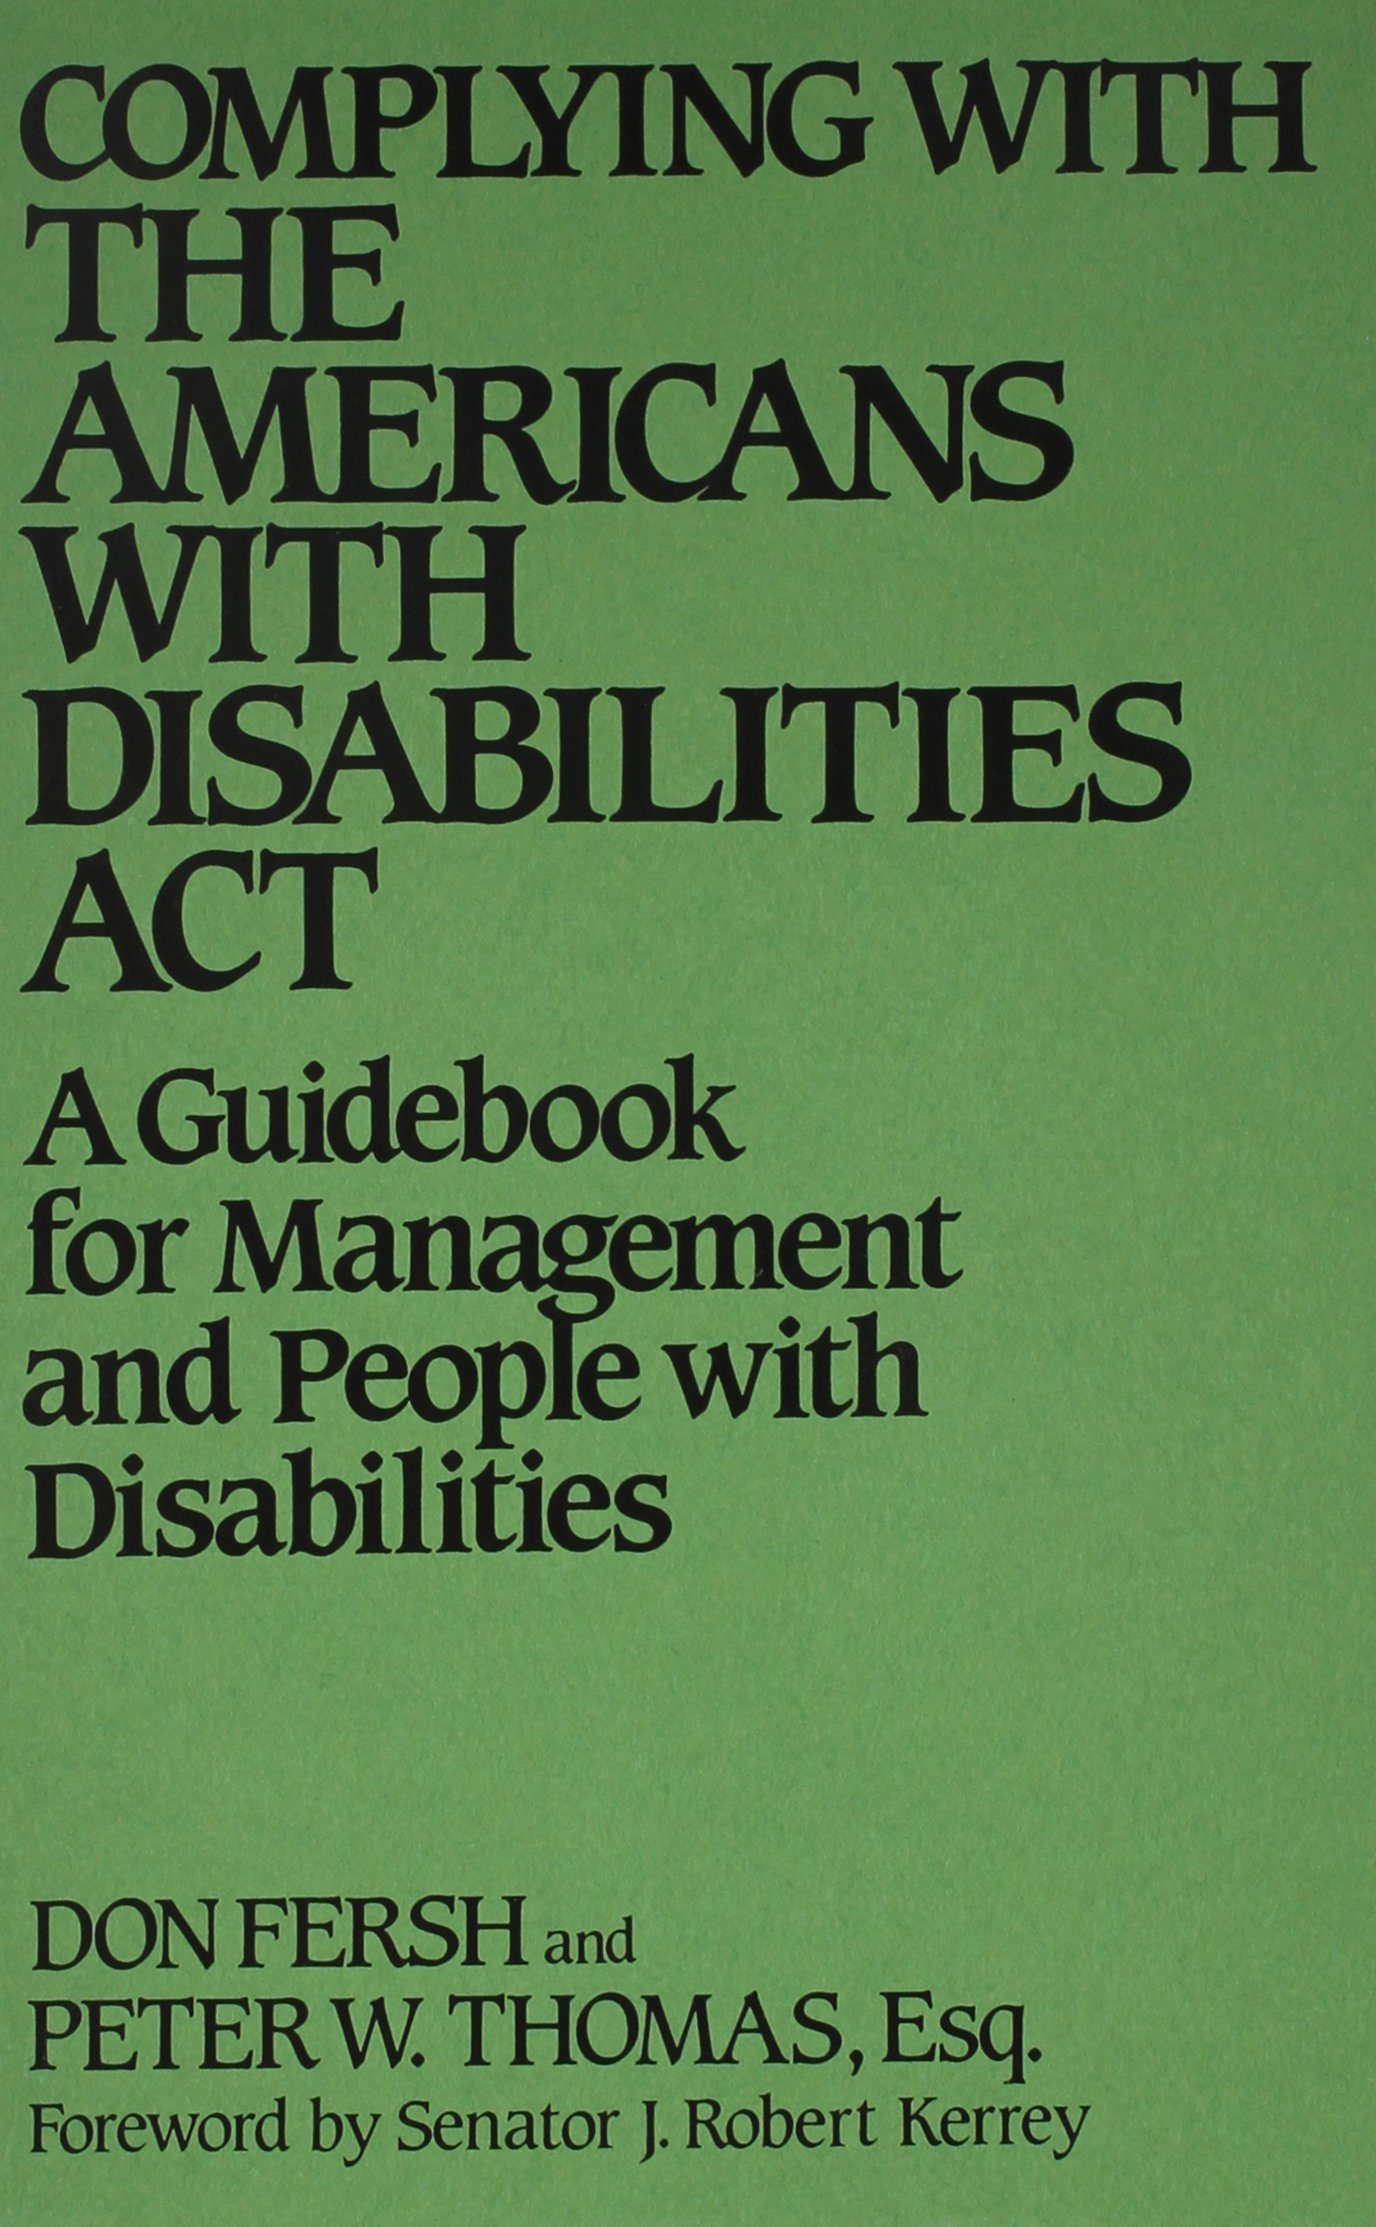 Complying with the Americans with Disabilities Act: A Guidebook for Management and People with Disabilities